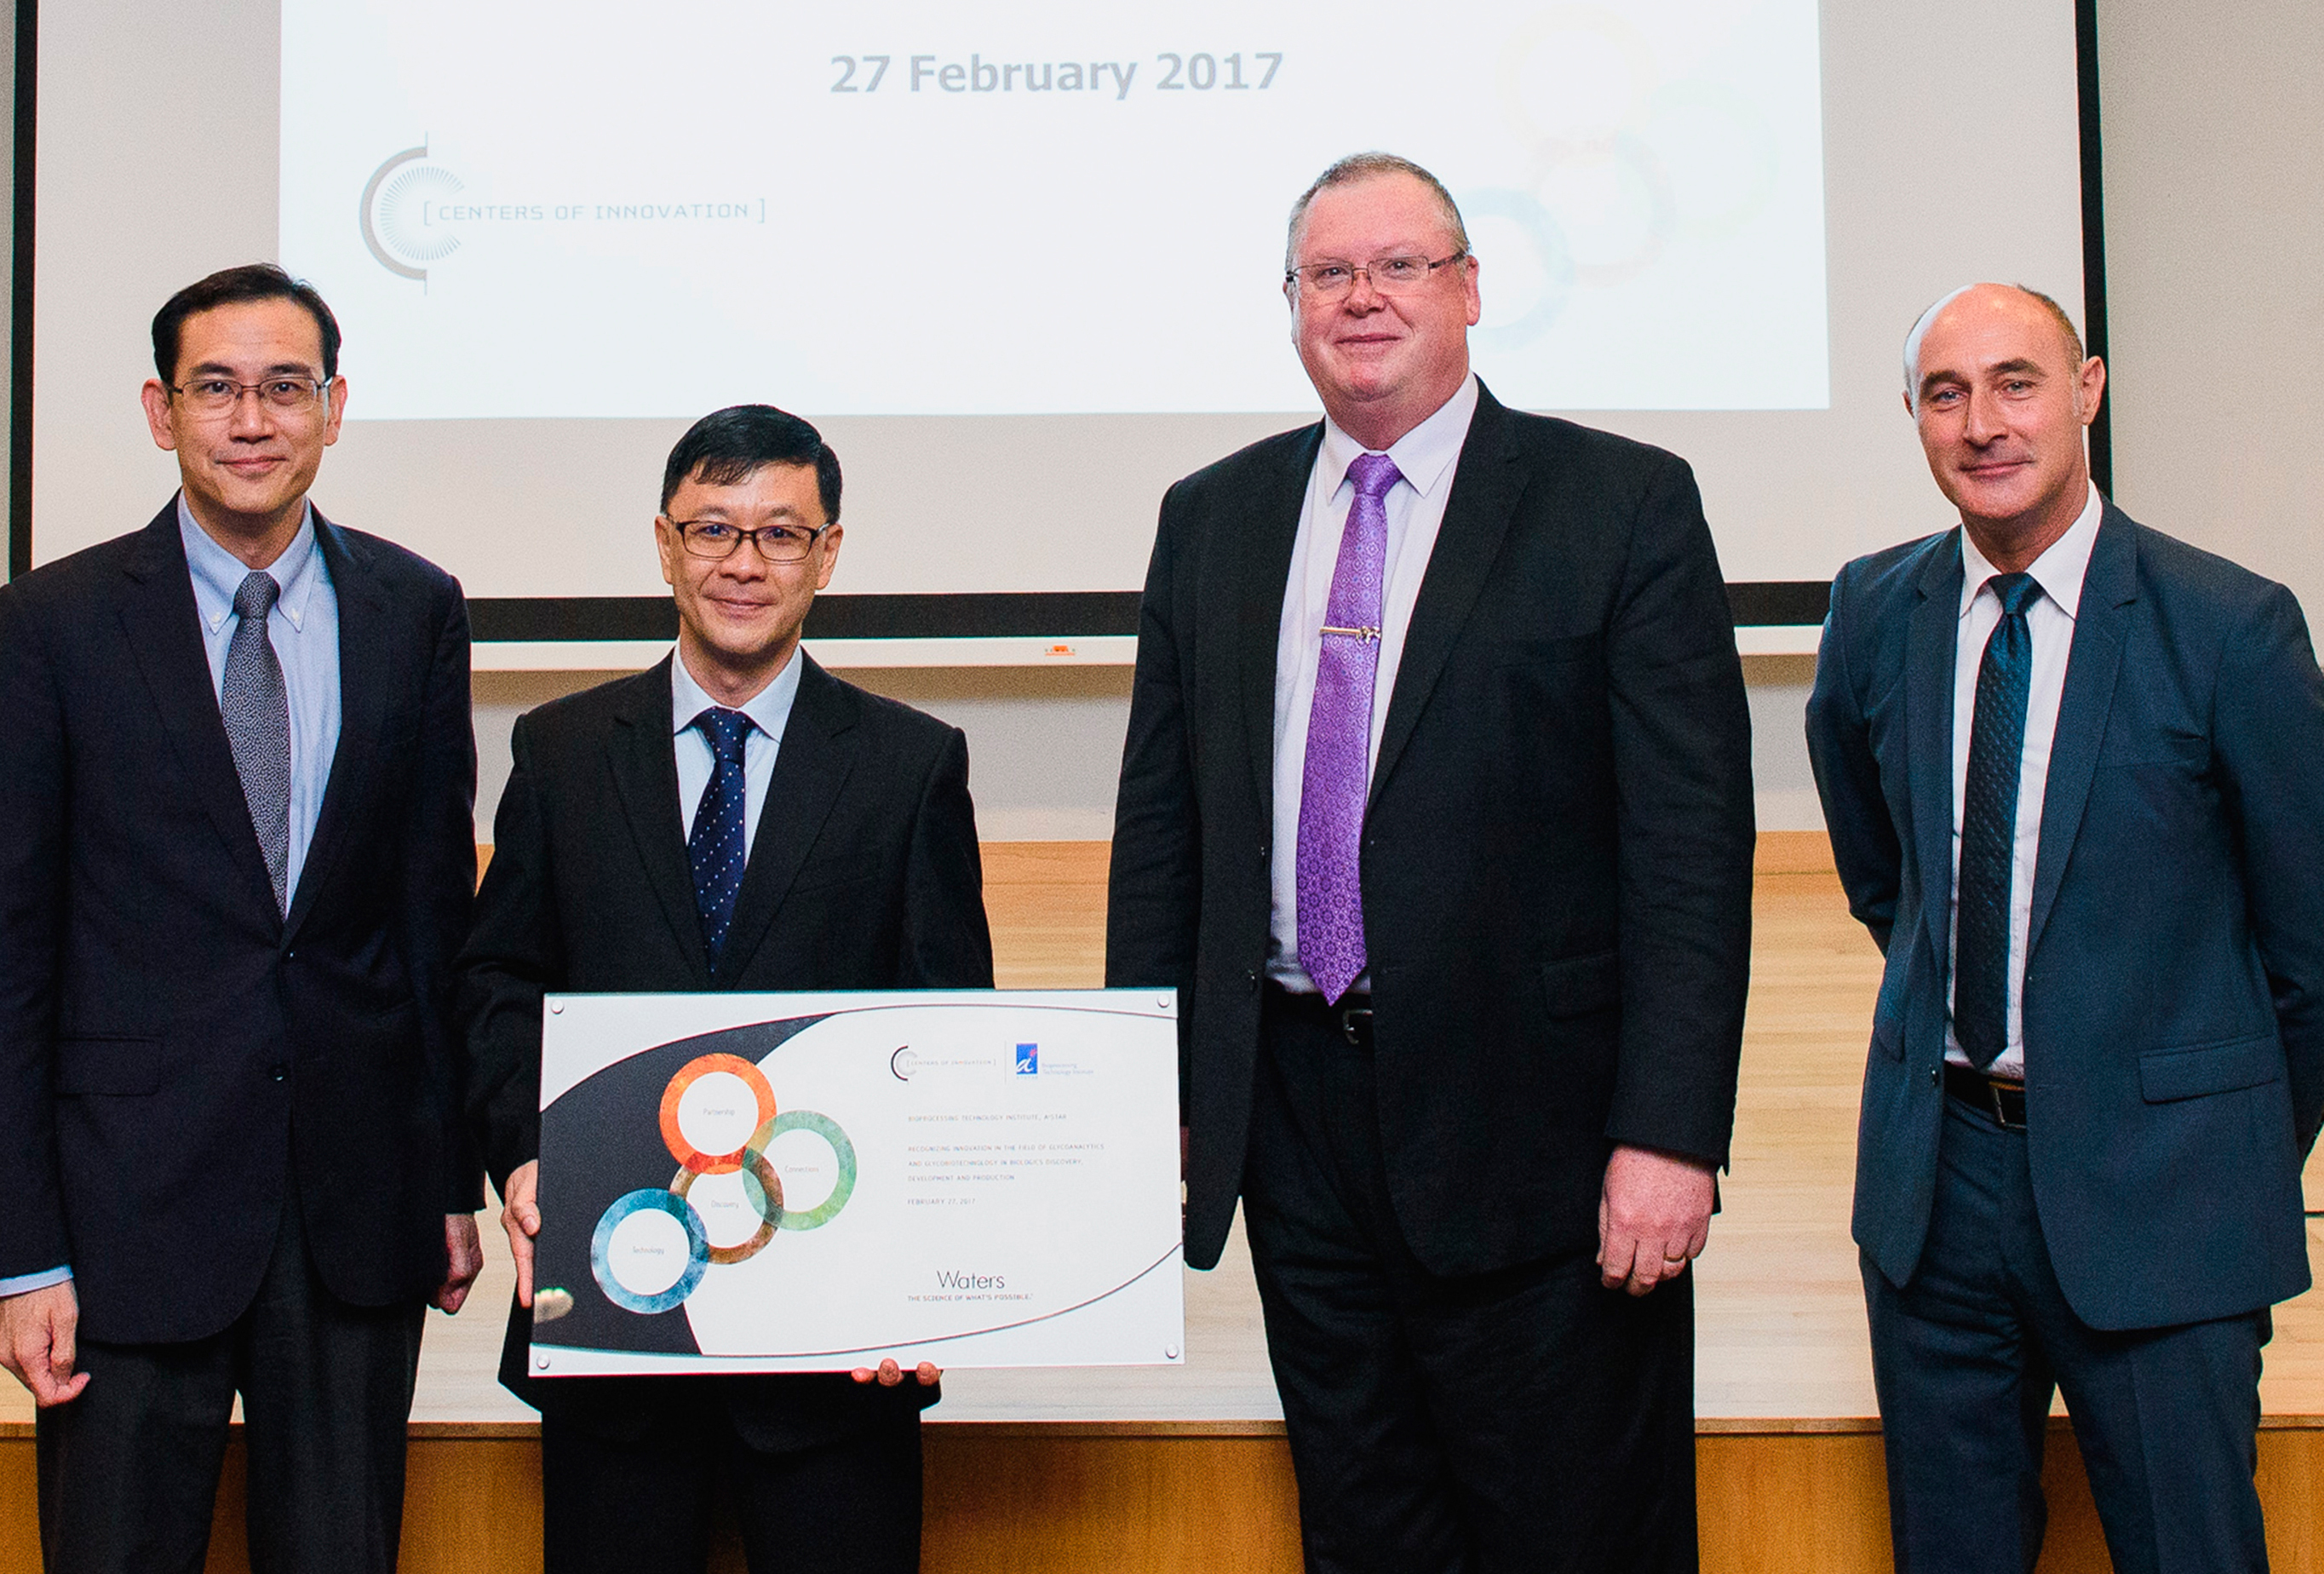 In a ceremony today, Singapore's Bioprocessing Technology Institute joined the Waters Centers of Innovation Program. On hand for the event were (l. to r.) Dr. Benjamin Seet, Executive Director, Biomedical Research Council, Agency for Science, Technology and Research, Singapore; Professor Kong Peng Lam, Executive Director, Bioprocessing Technology Institute (BTI); Eric Fotheringham, Senior Director – Waters Centers of Innovation Program; and Mathieu Laouenon, General Manager, South Asia, Waters Corporation. (Photo: Business Wire)